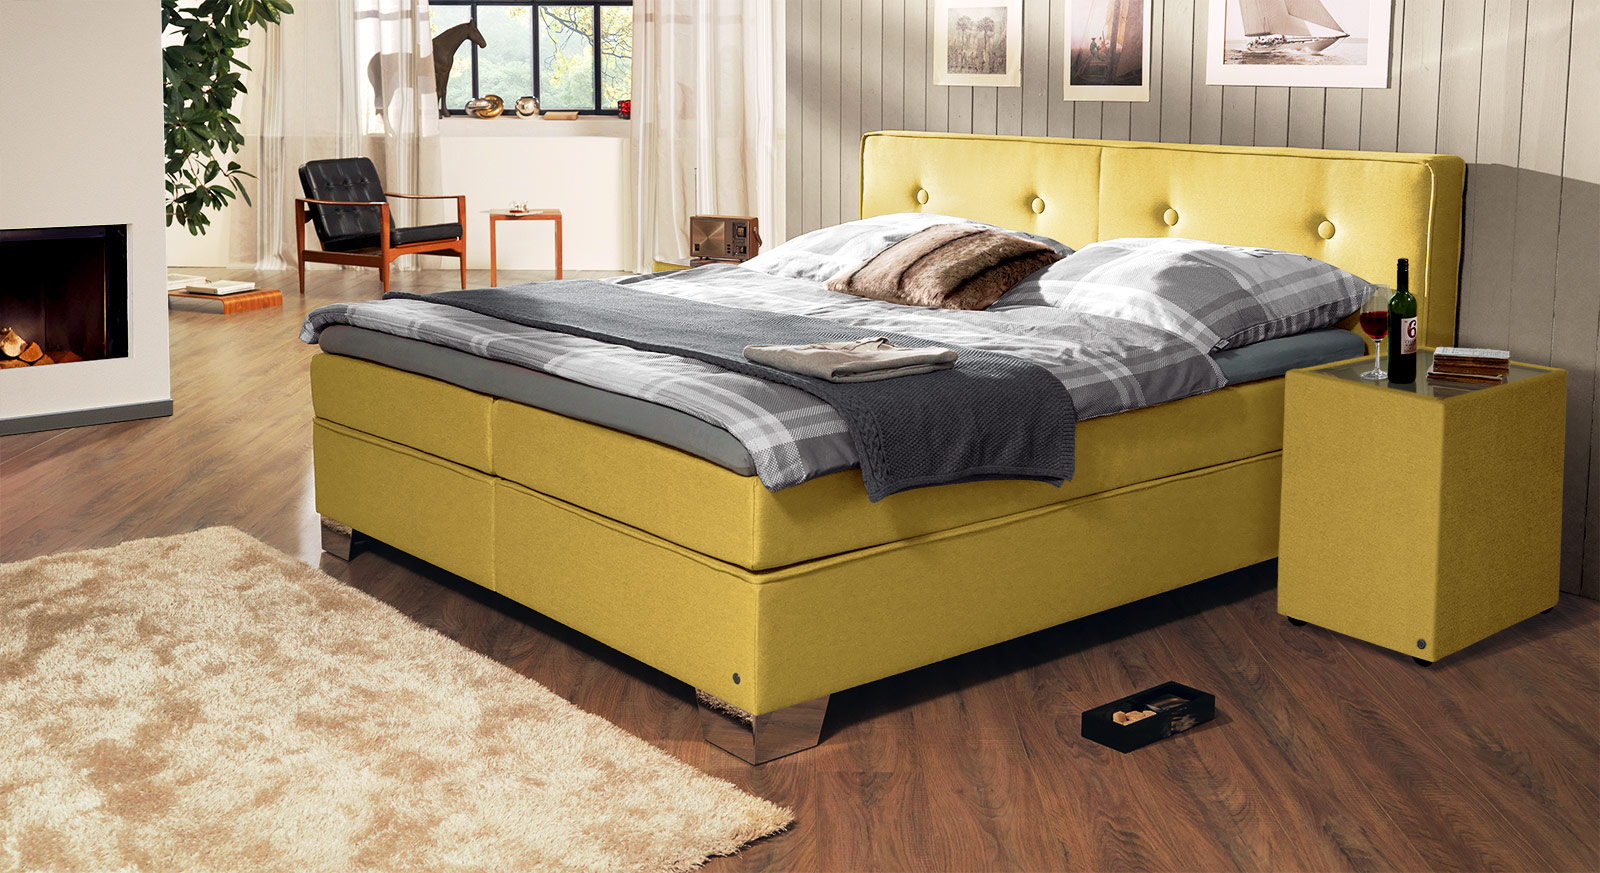 Trendiges TOM TAILOR Soft Boxspringbett in modernen Farben